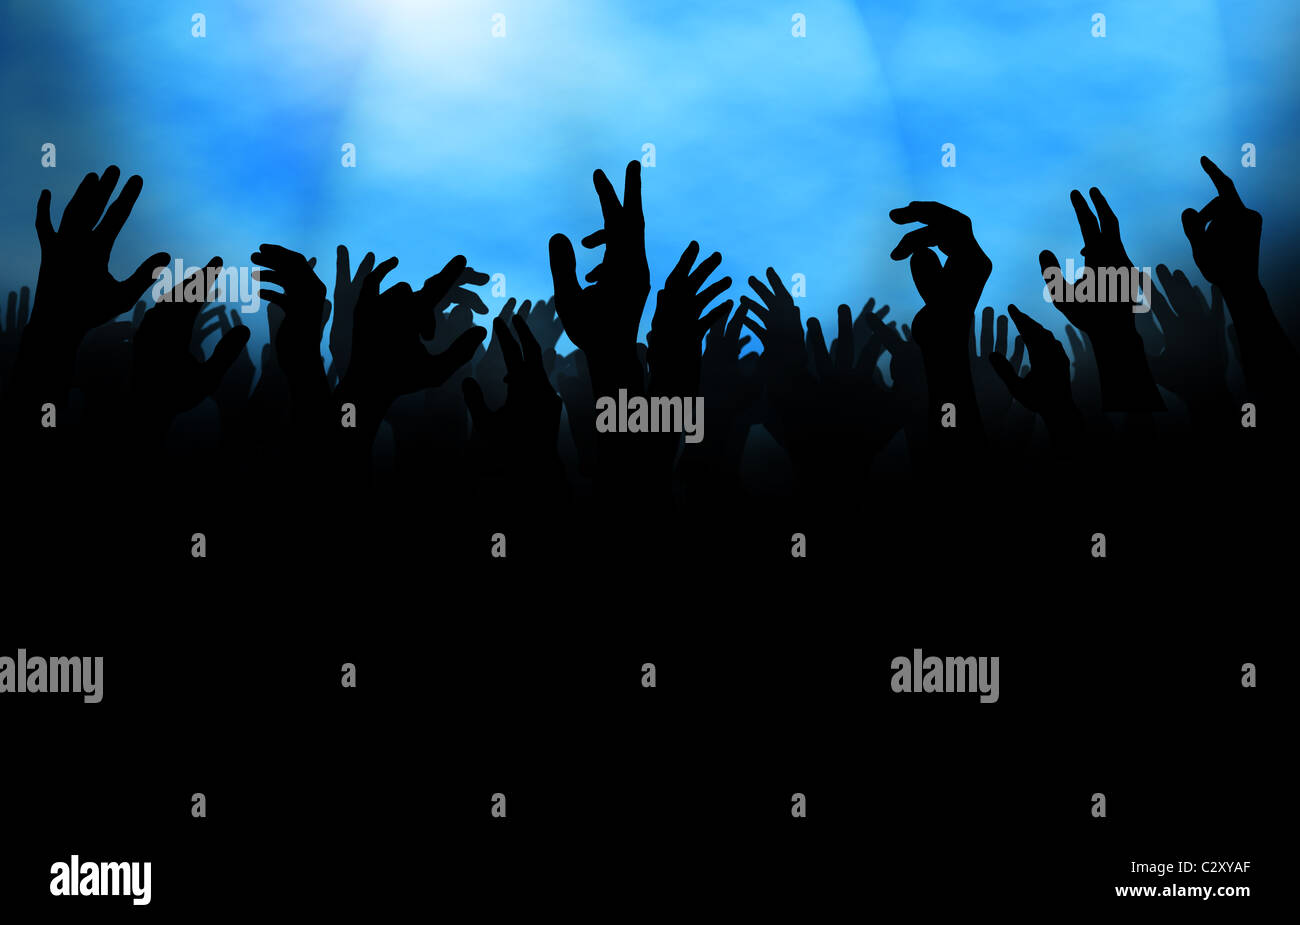 Silhouette of a crowd with raised hands, either at a concert or on the dance floor in a club. - Stock Image